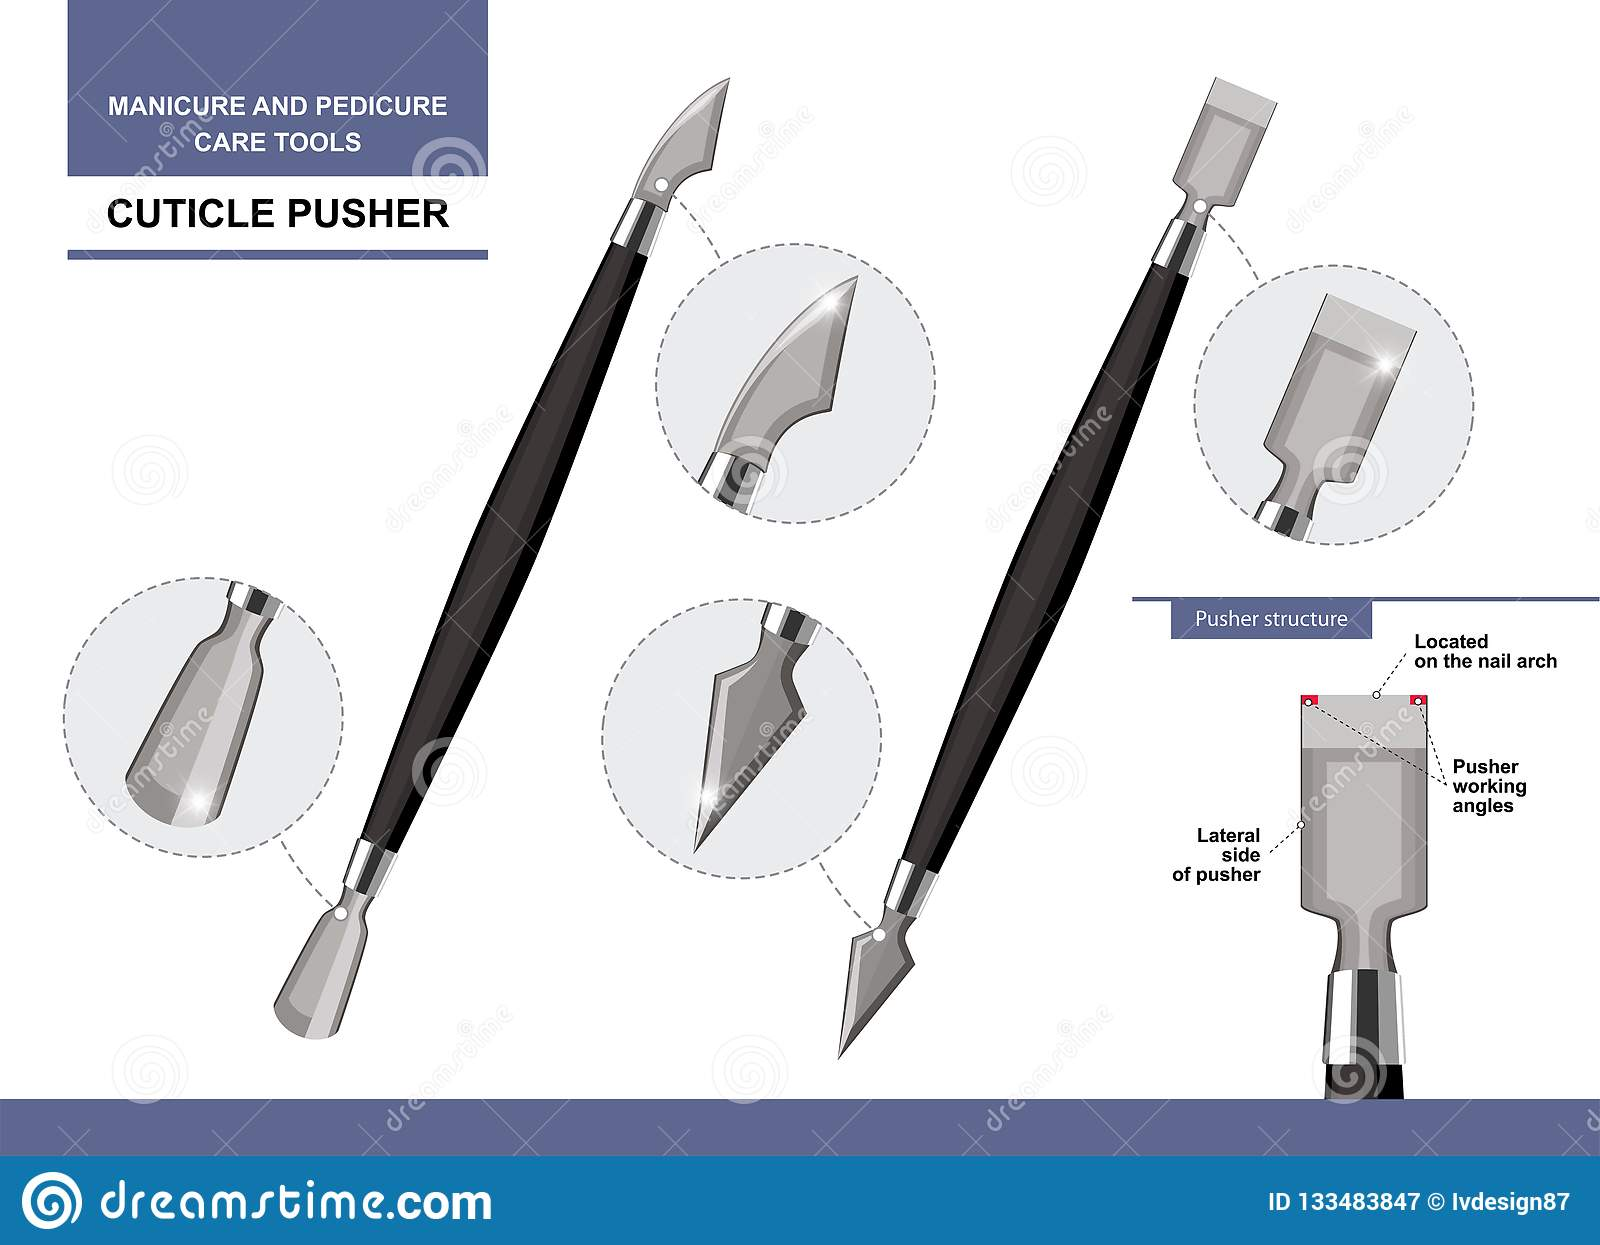 Essential Manicure And Pedicure Tools And Equipment  Cuticle Pusher